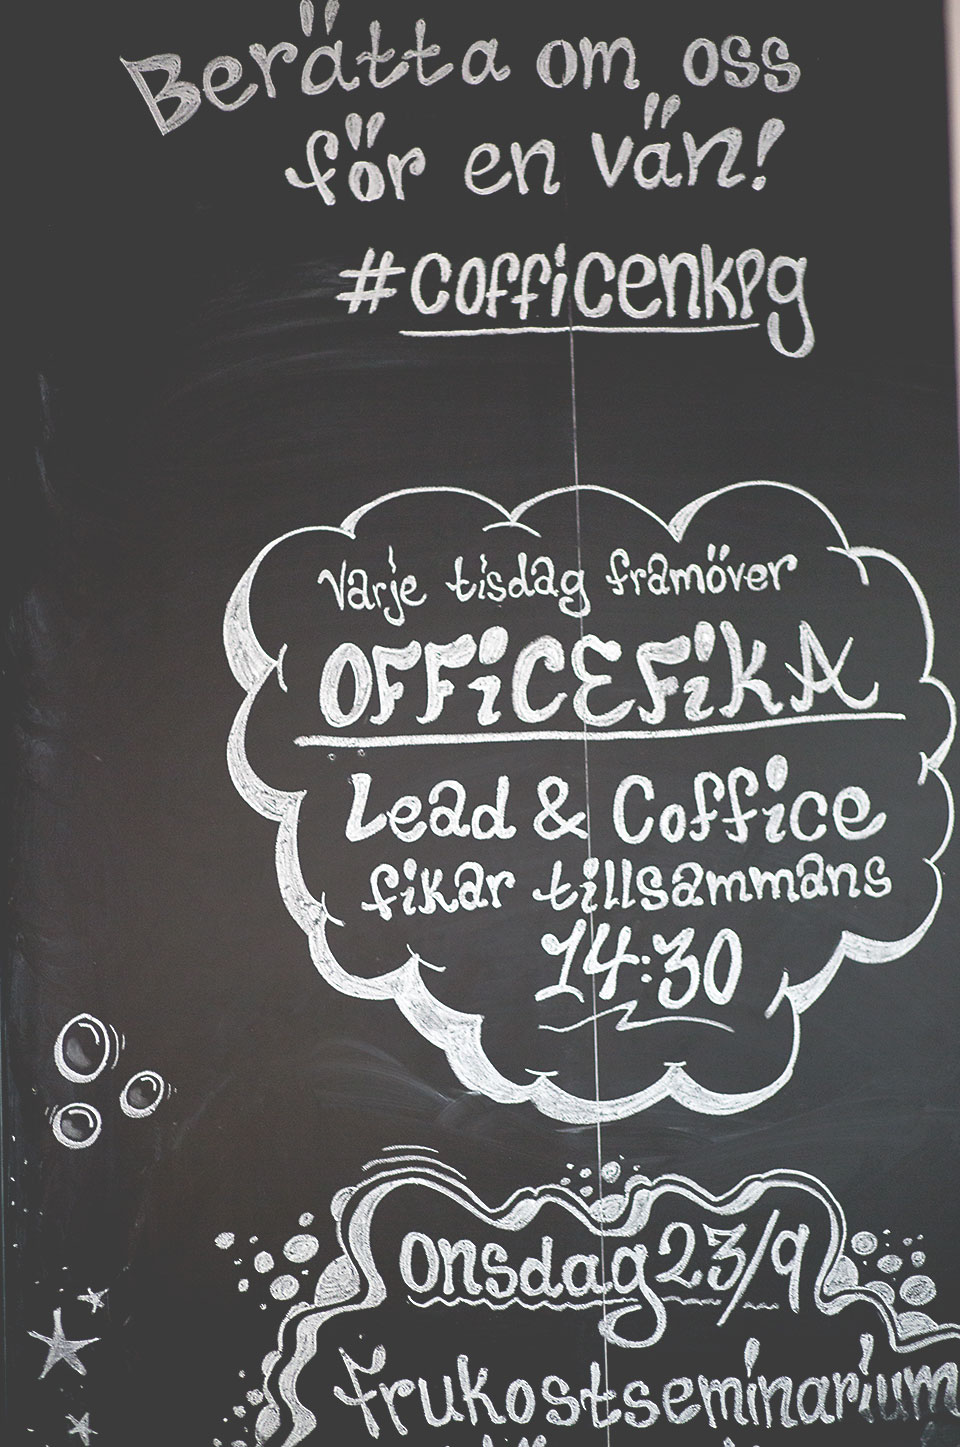 cofficenkpg